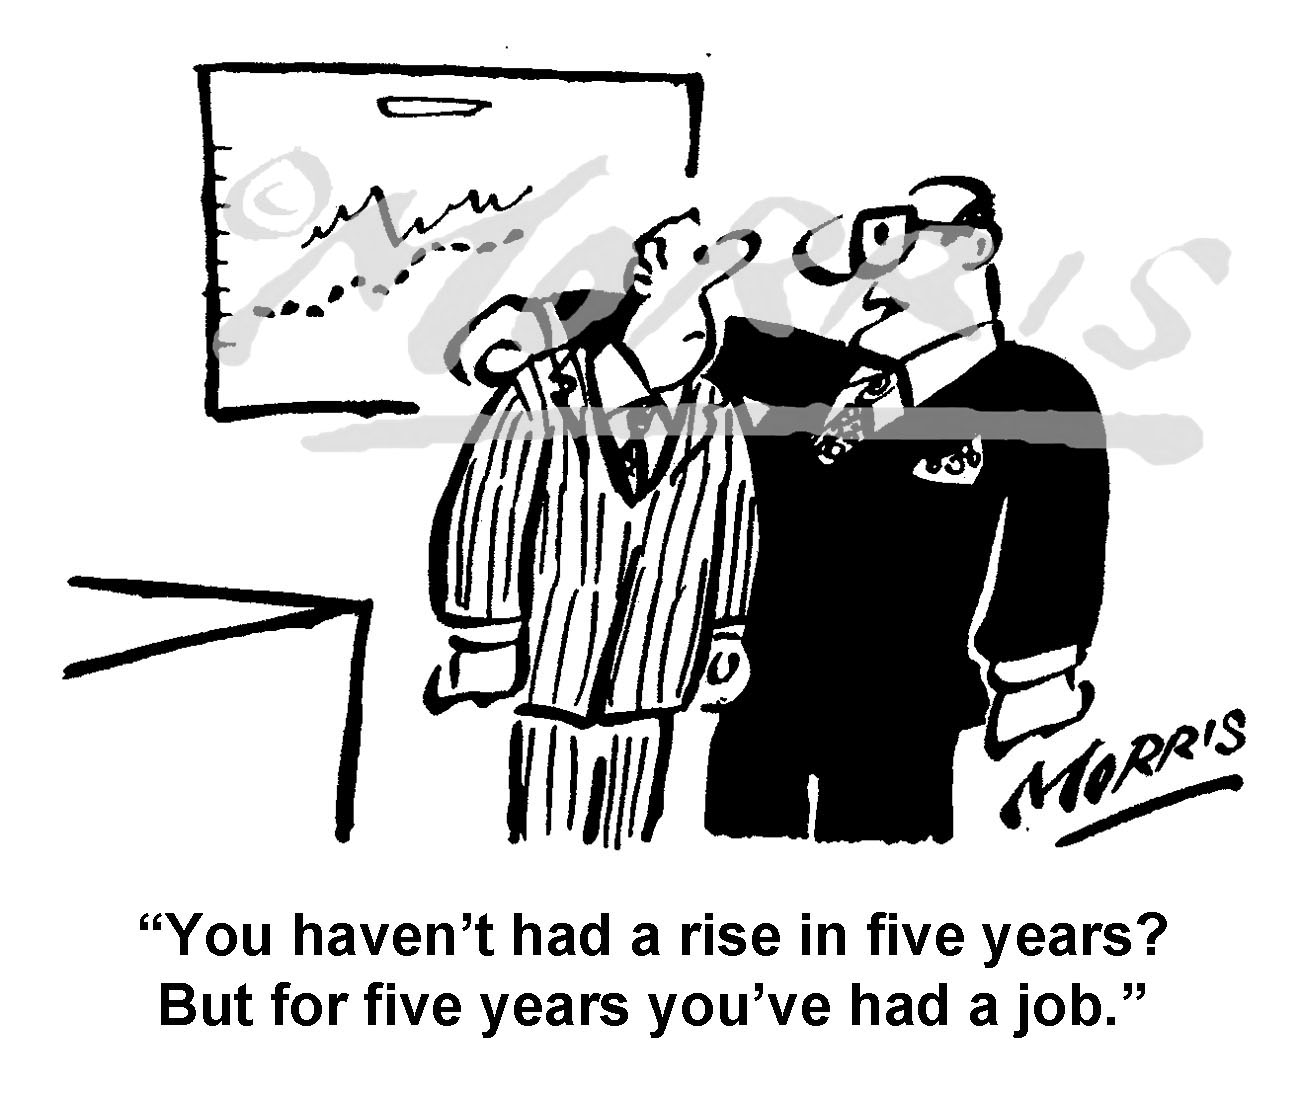 Employee asking for a wage rise cartoon – Ref: 8294bw